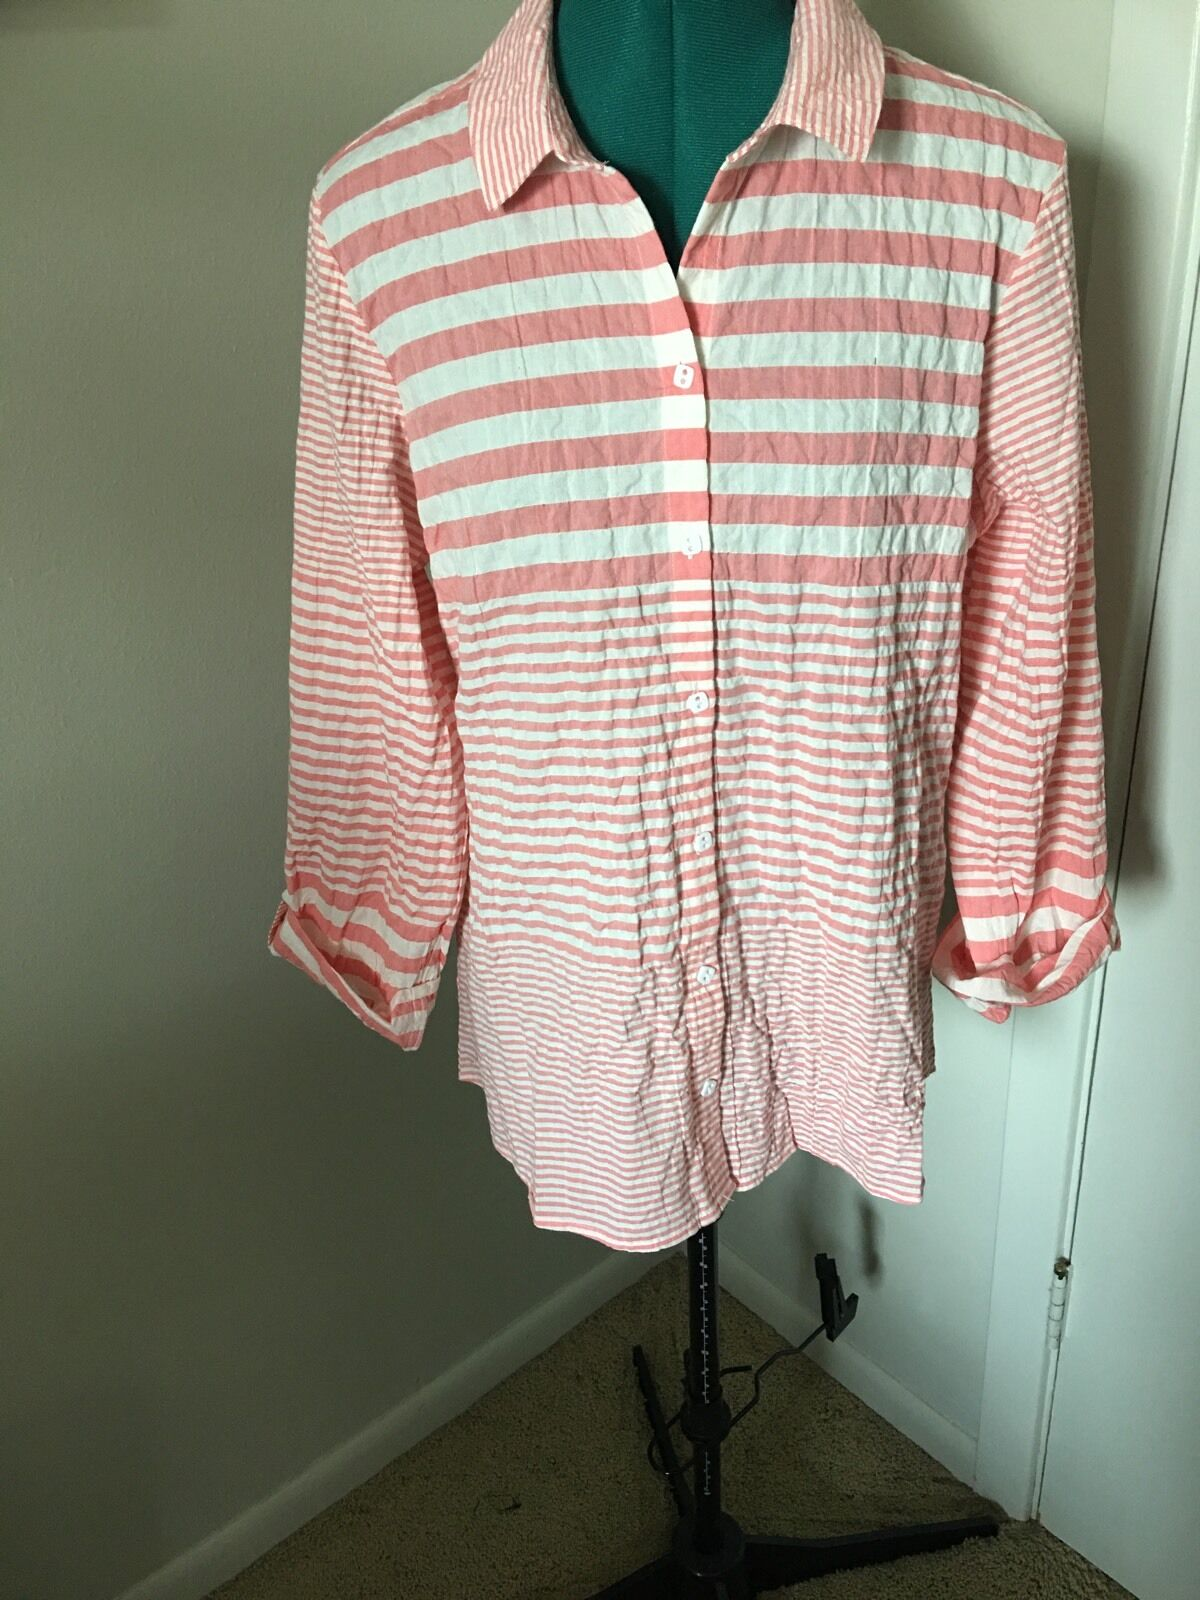 Habitat Papaya Cotton shirt.Größe  M.NWT.